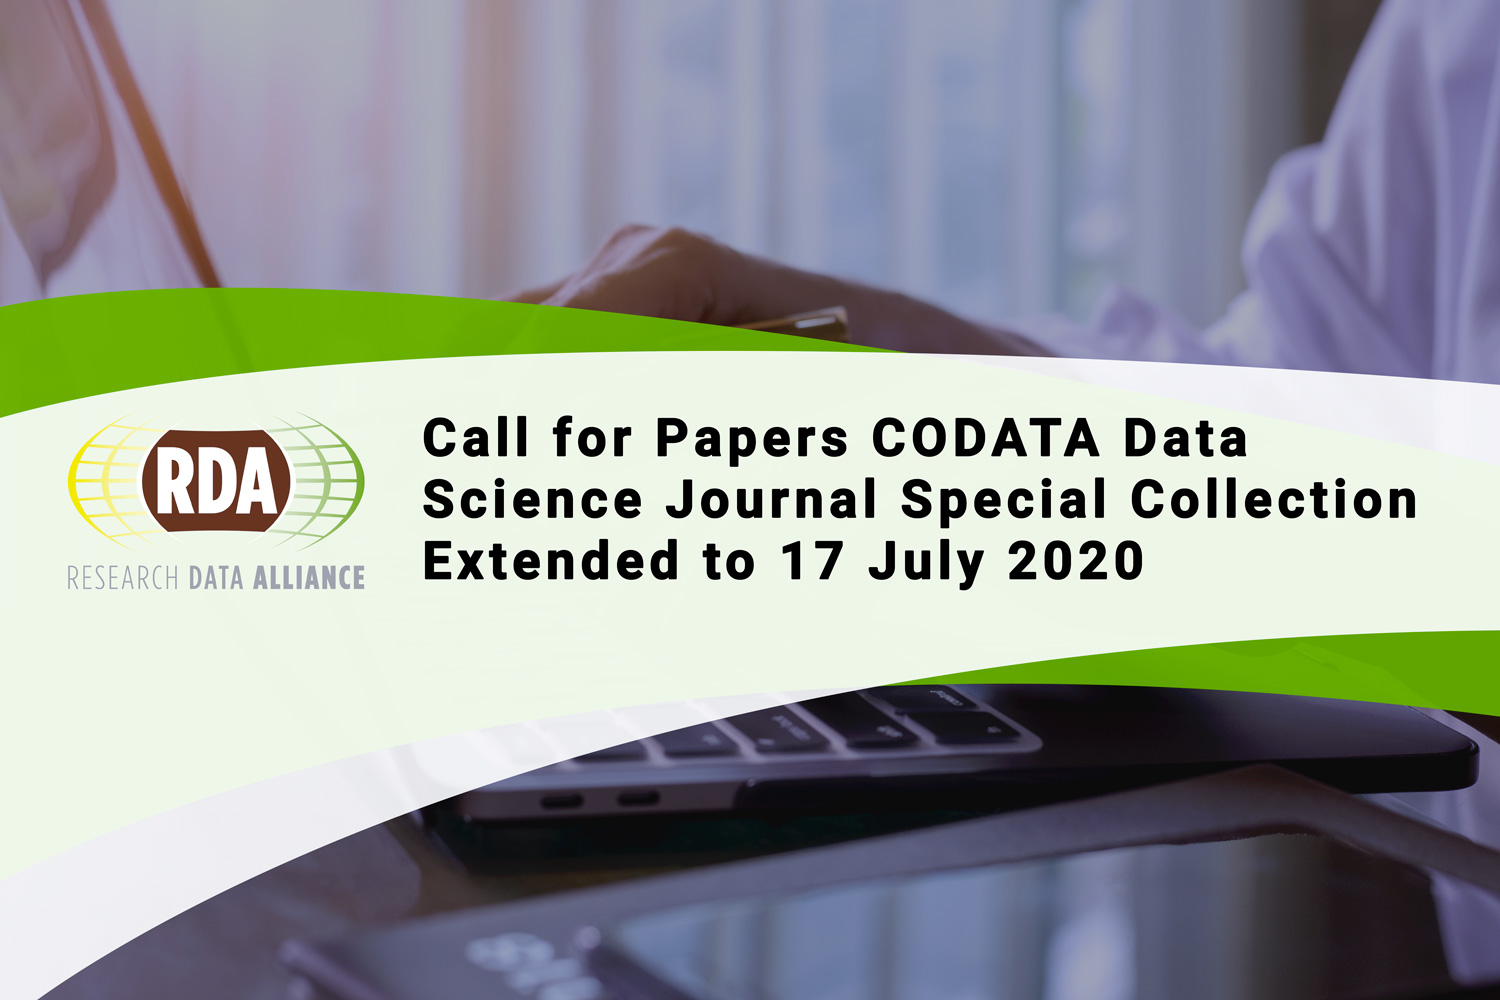 Call for Papers CODATA Data Science Journal RDA Special Collection Extended to 17 July 2020